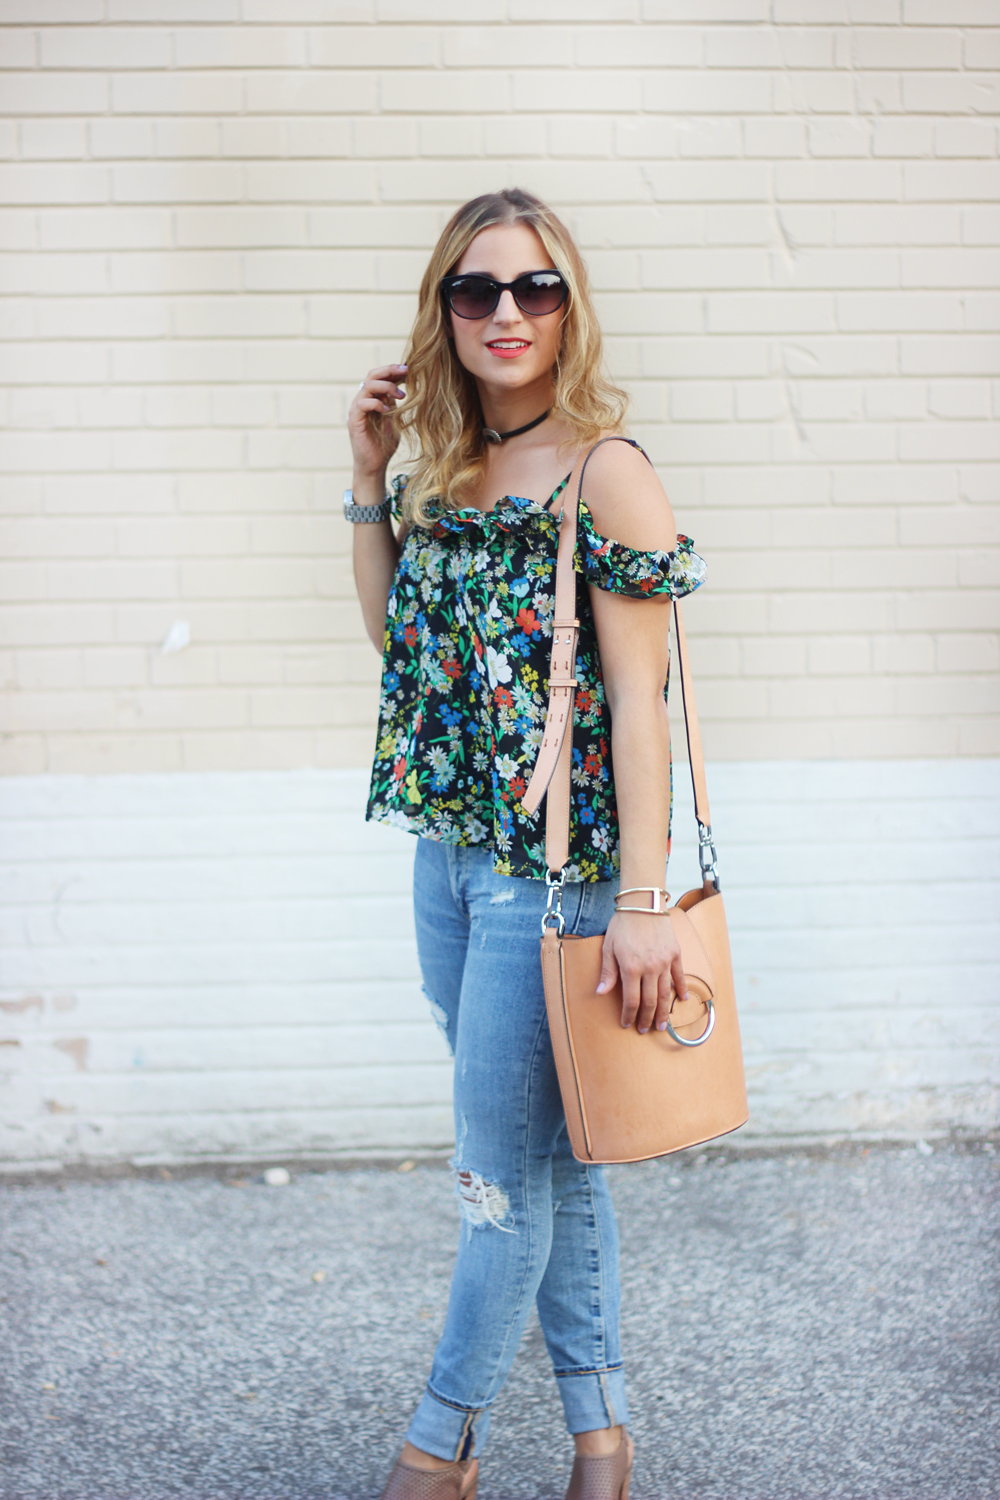 Topshop Floral Off the Shoulder Top and Gap Destructed True Skinny Jeans